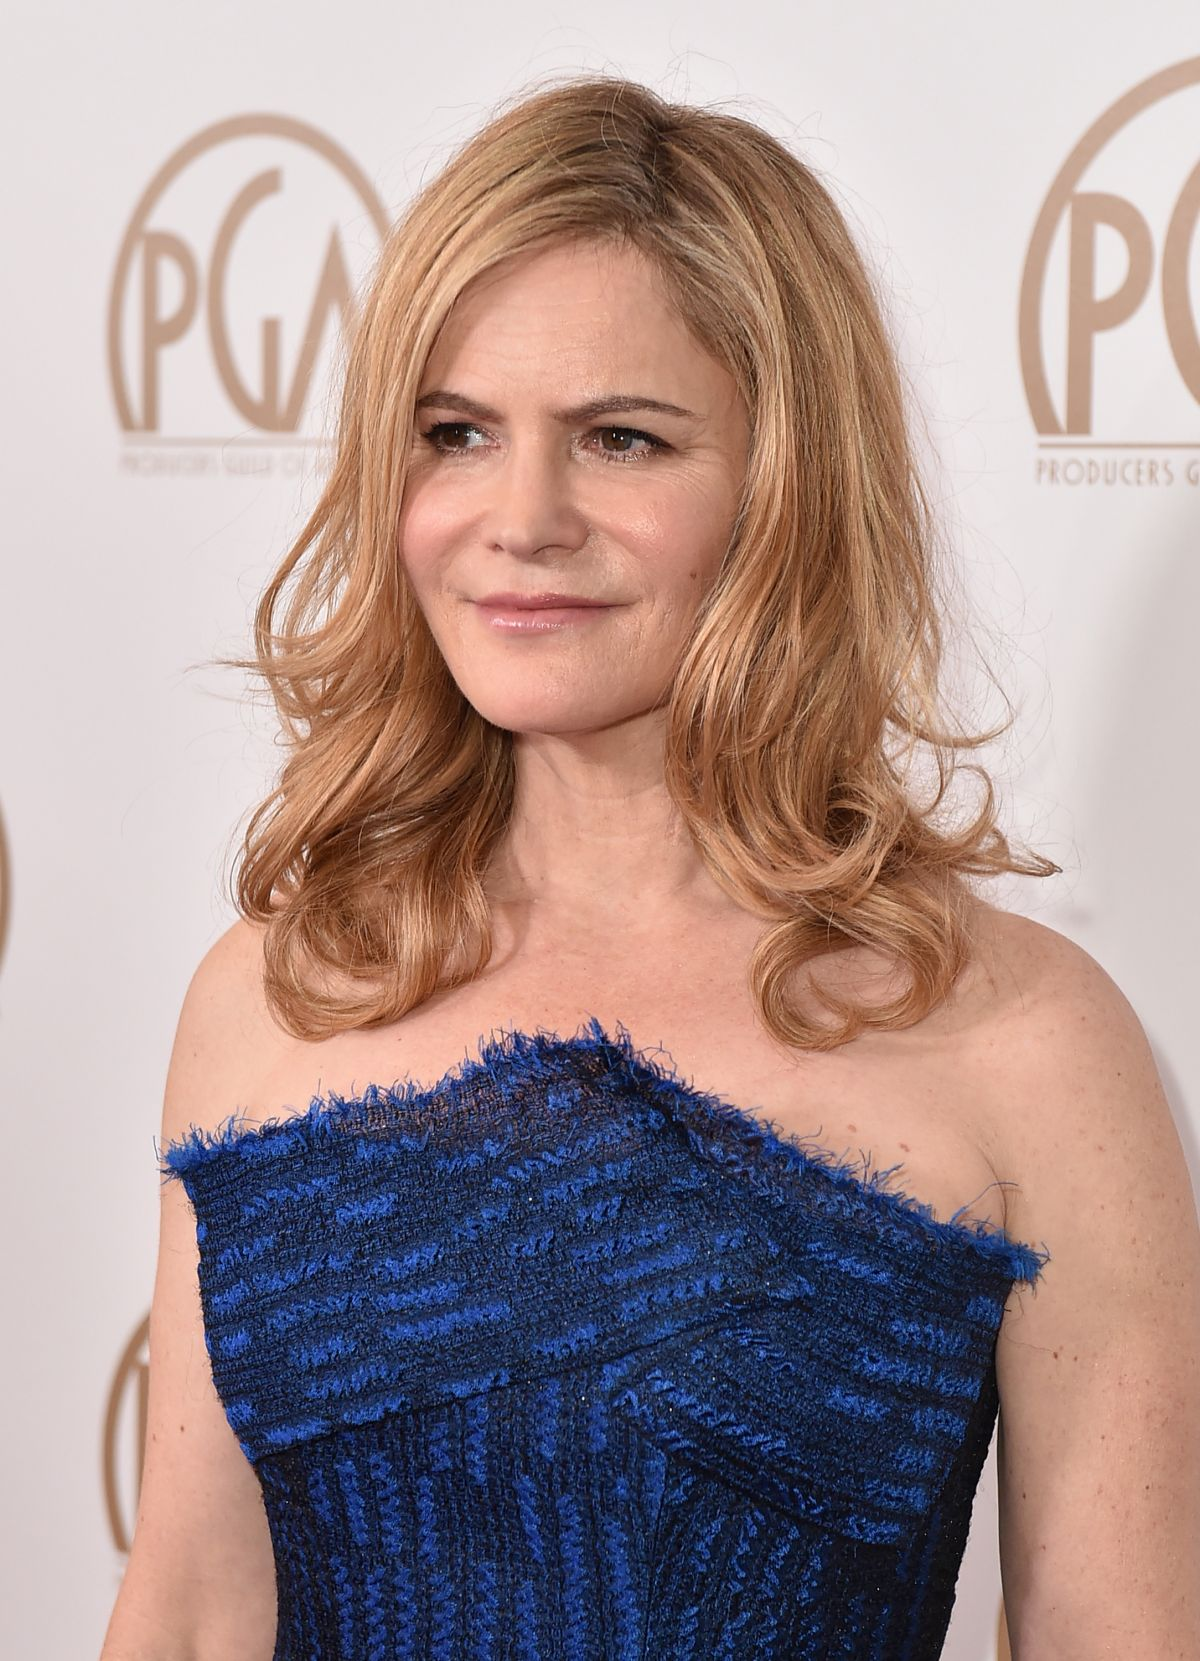 JENNIFER JASON LEIGH at 27th Annual Producers Guild Awards in Los Angeles 01/23/2016